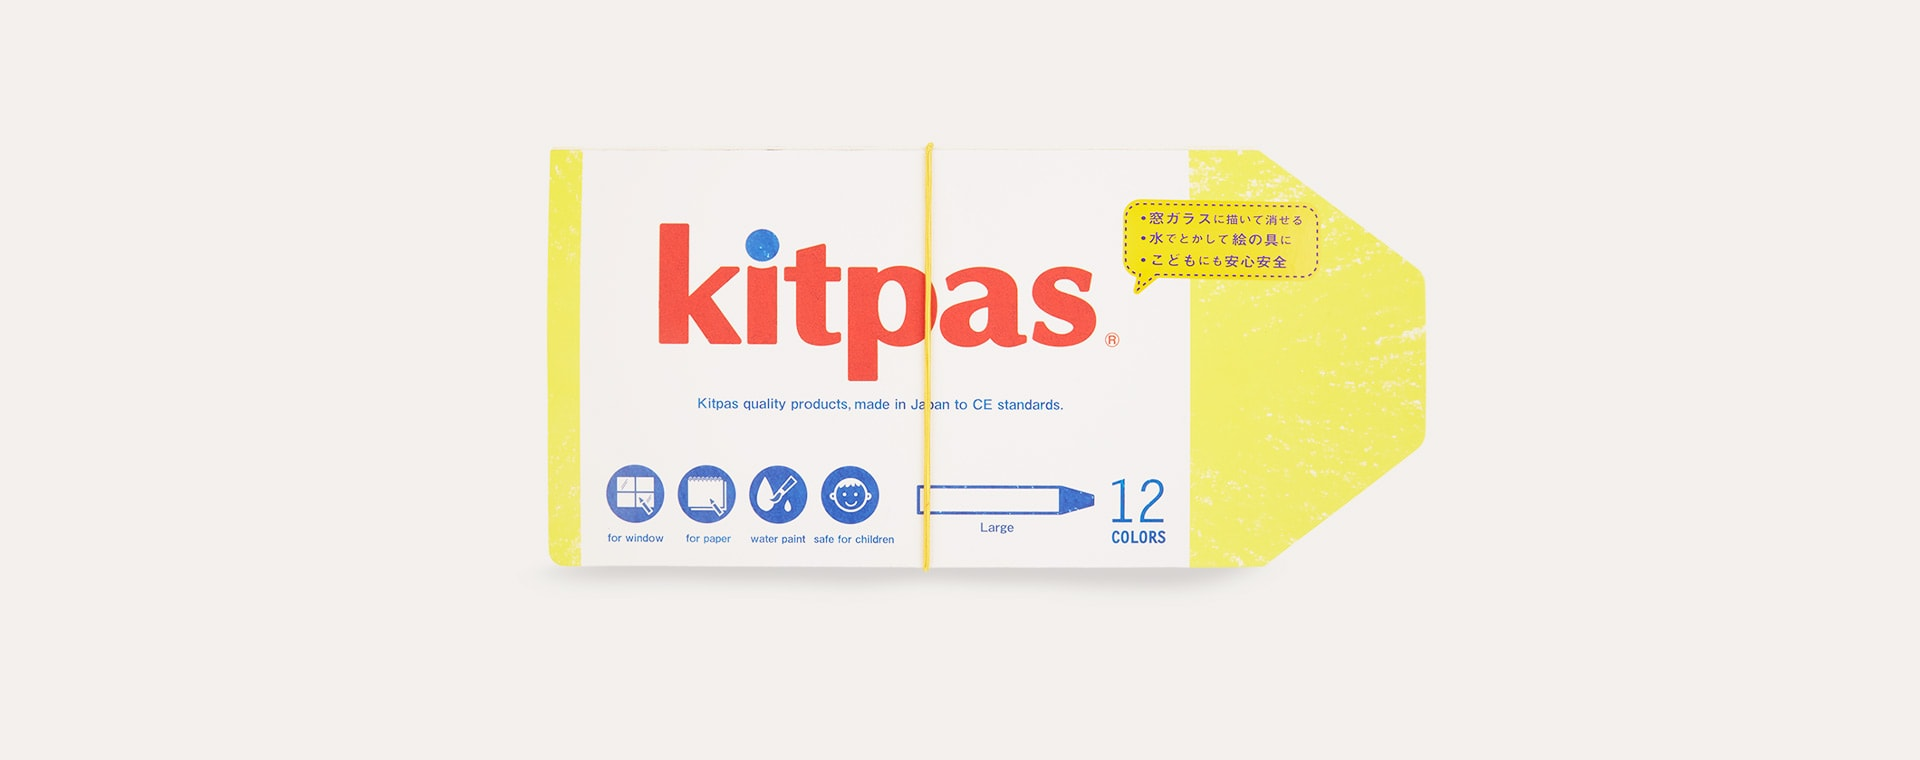 Multi kitpas Large 12 Colours